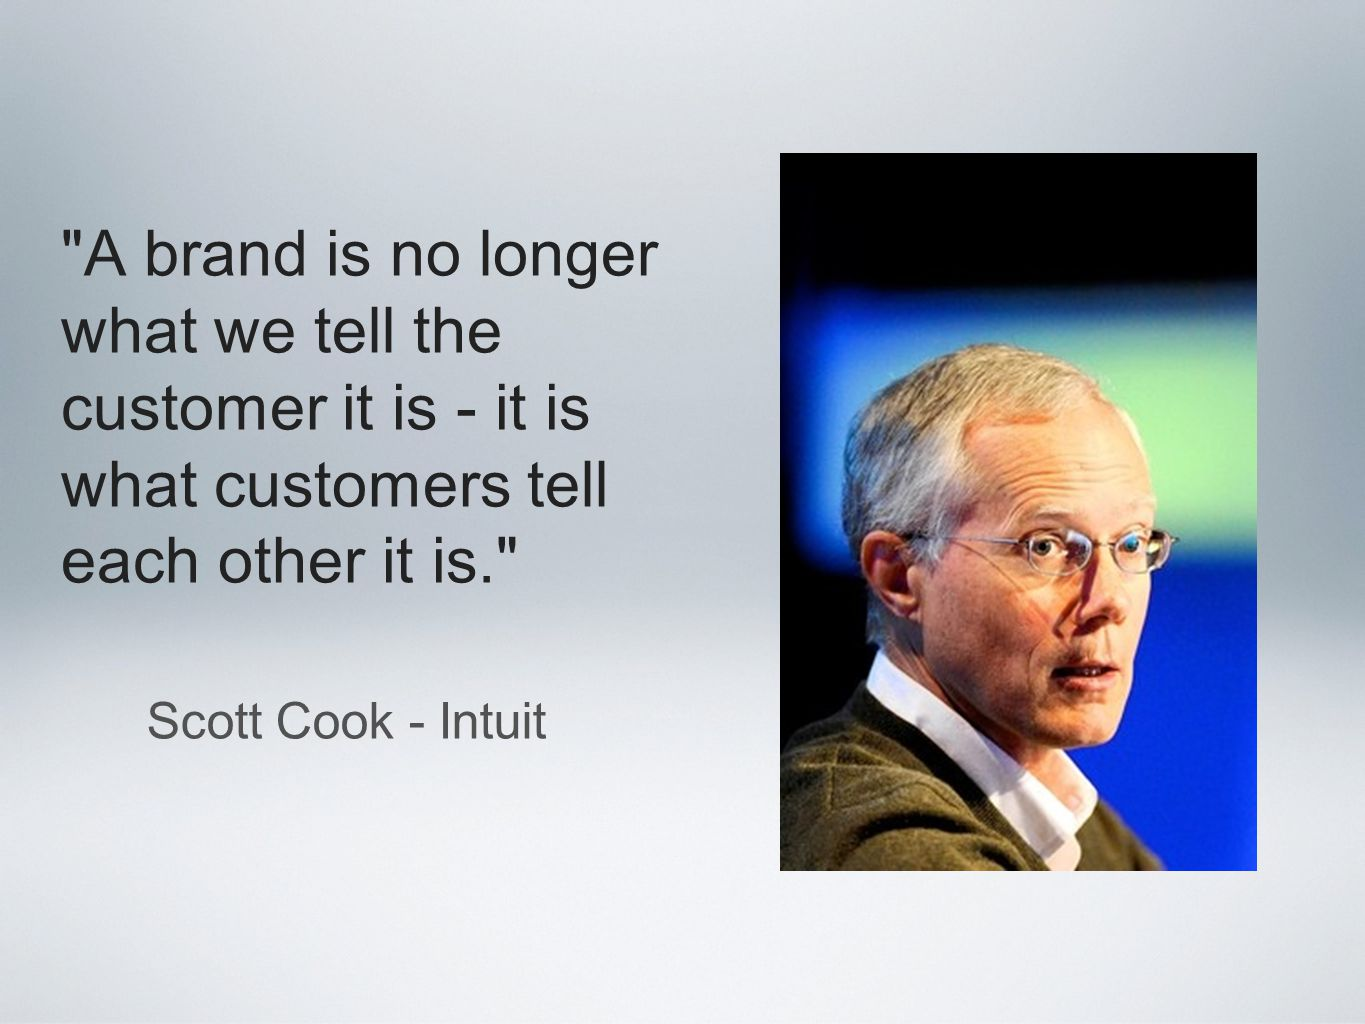 A brand is no longer what we tell the customer it is - it is what customers tell each other it is. Scott Cook - Intuit